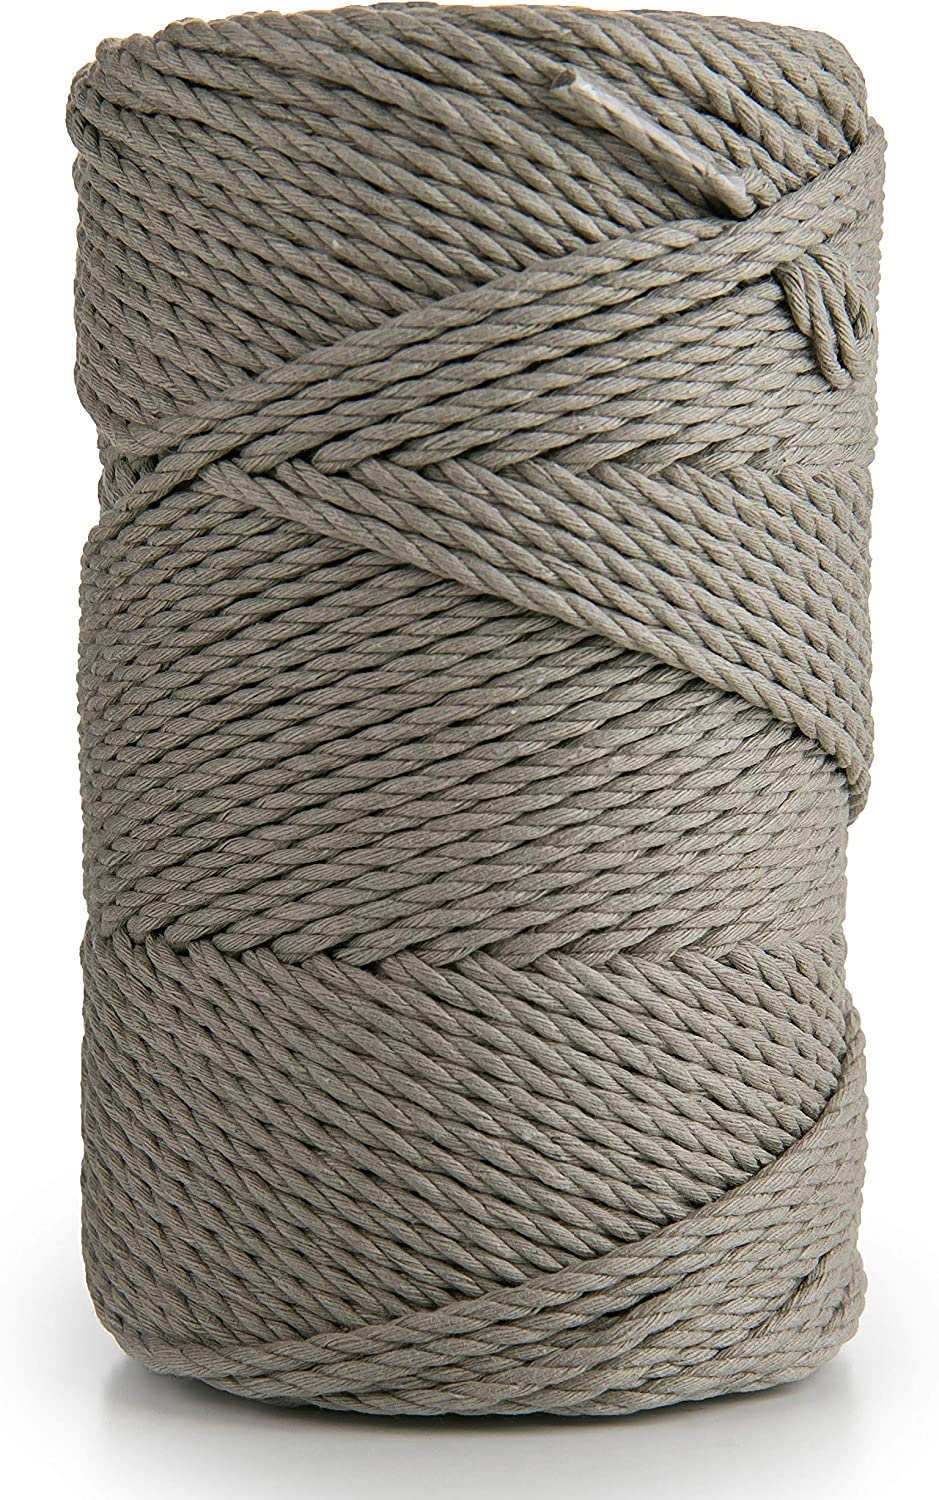 Wall Art White Soft 3 Strand Twisted Cotton Rope for Handmade 135m Cotton Yarn String for Plant Hanger Dream Catcher and DIY Projects Pure White Macrame Cord 3mm x 147 yd MB CORDAS